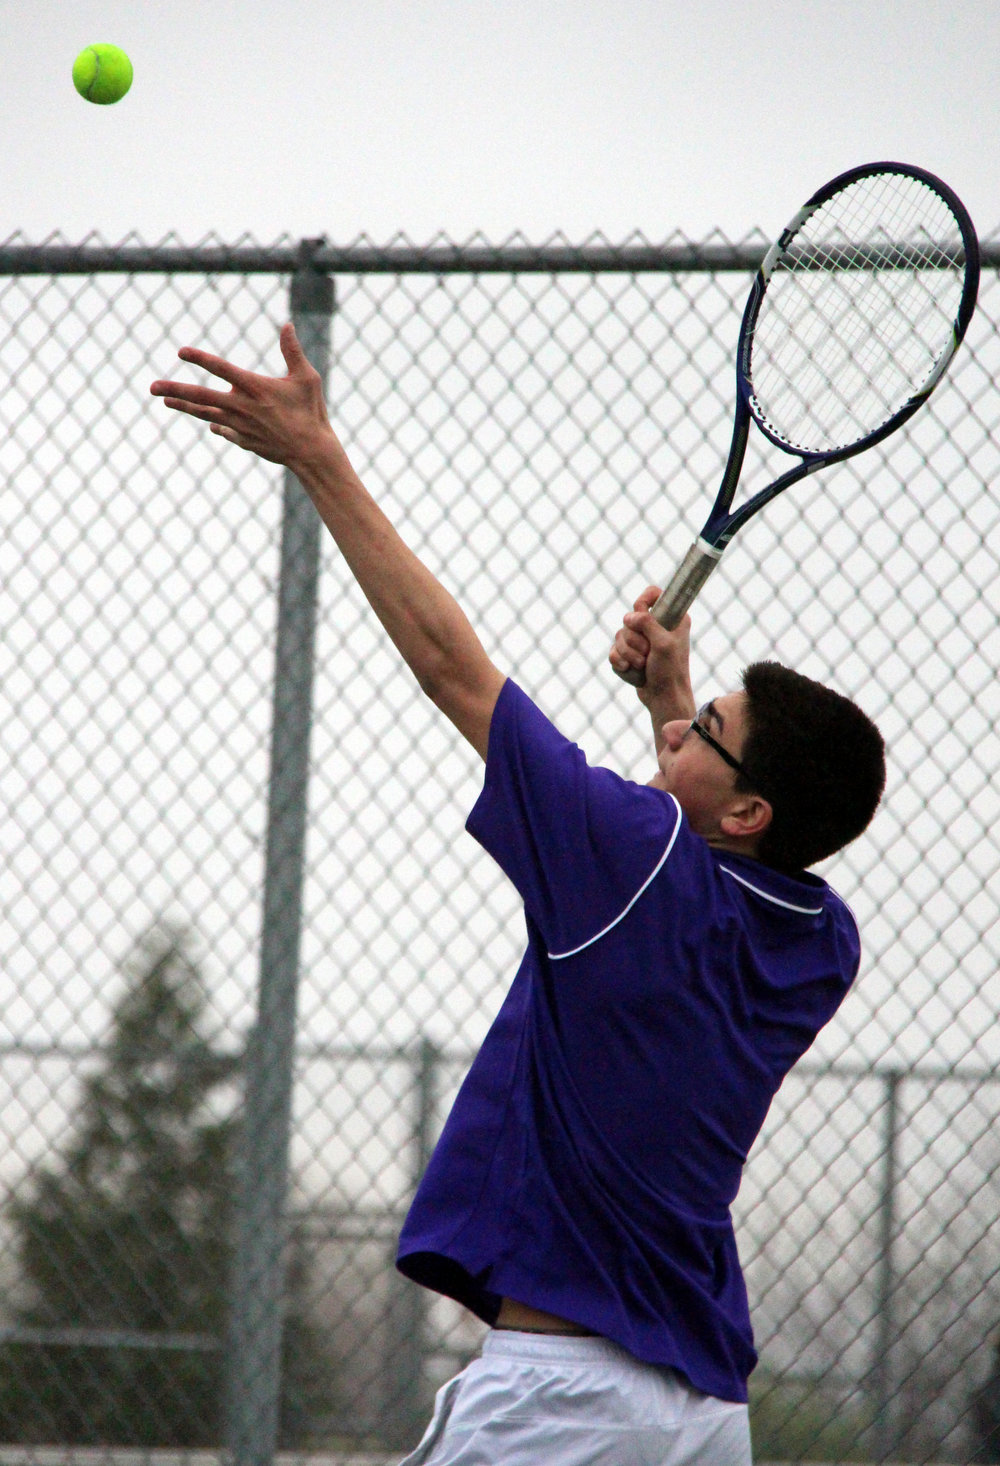 ROSS MARTIN/Citizen photo Park Hill South's Joe Badalucco prepares to hit a serve to Park Hill sophomore Cooper Hayes in a single match during a dual Thursday, March 30 at Park Hill South High School in Riverside, Mo.